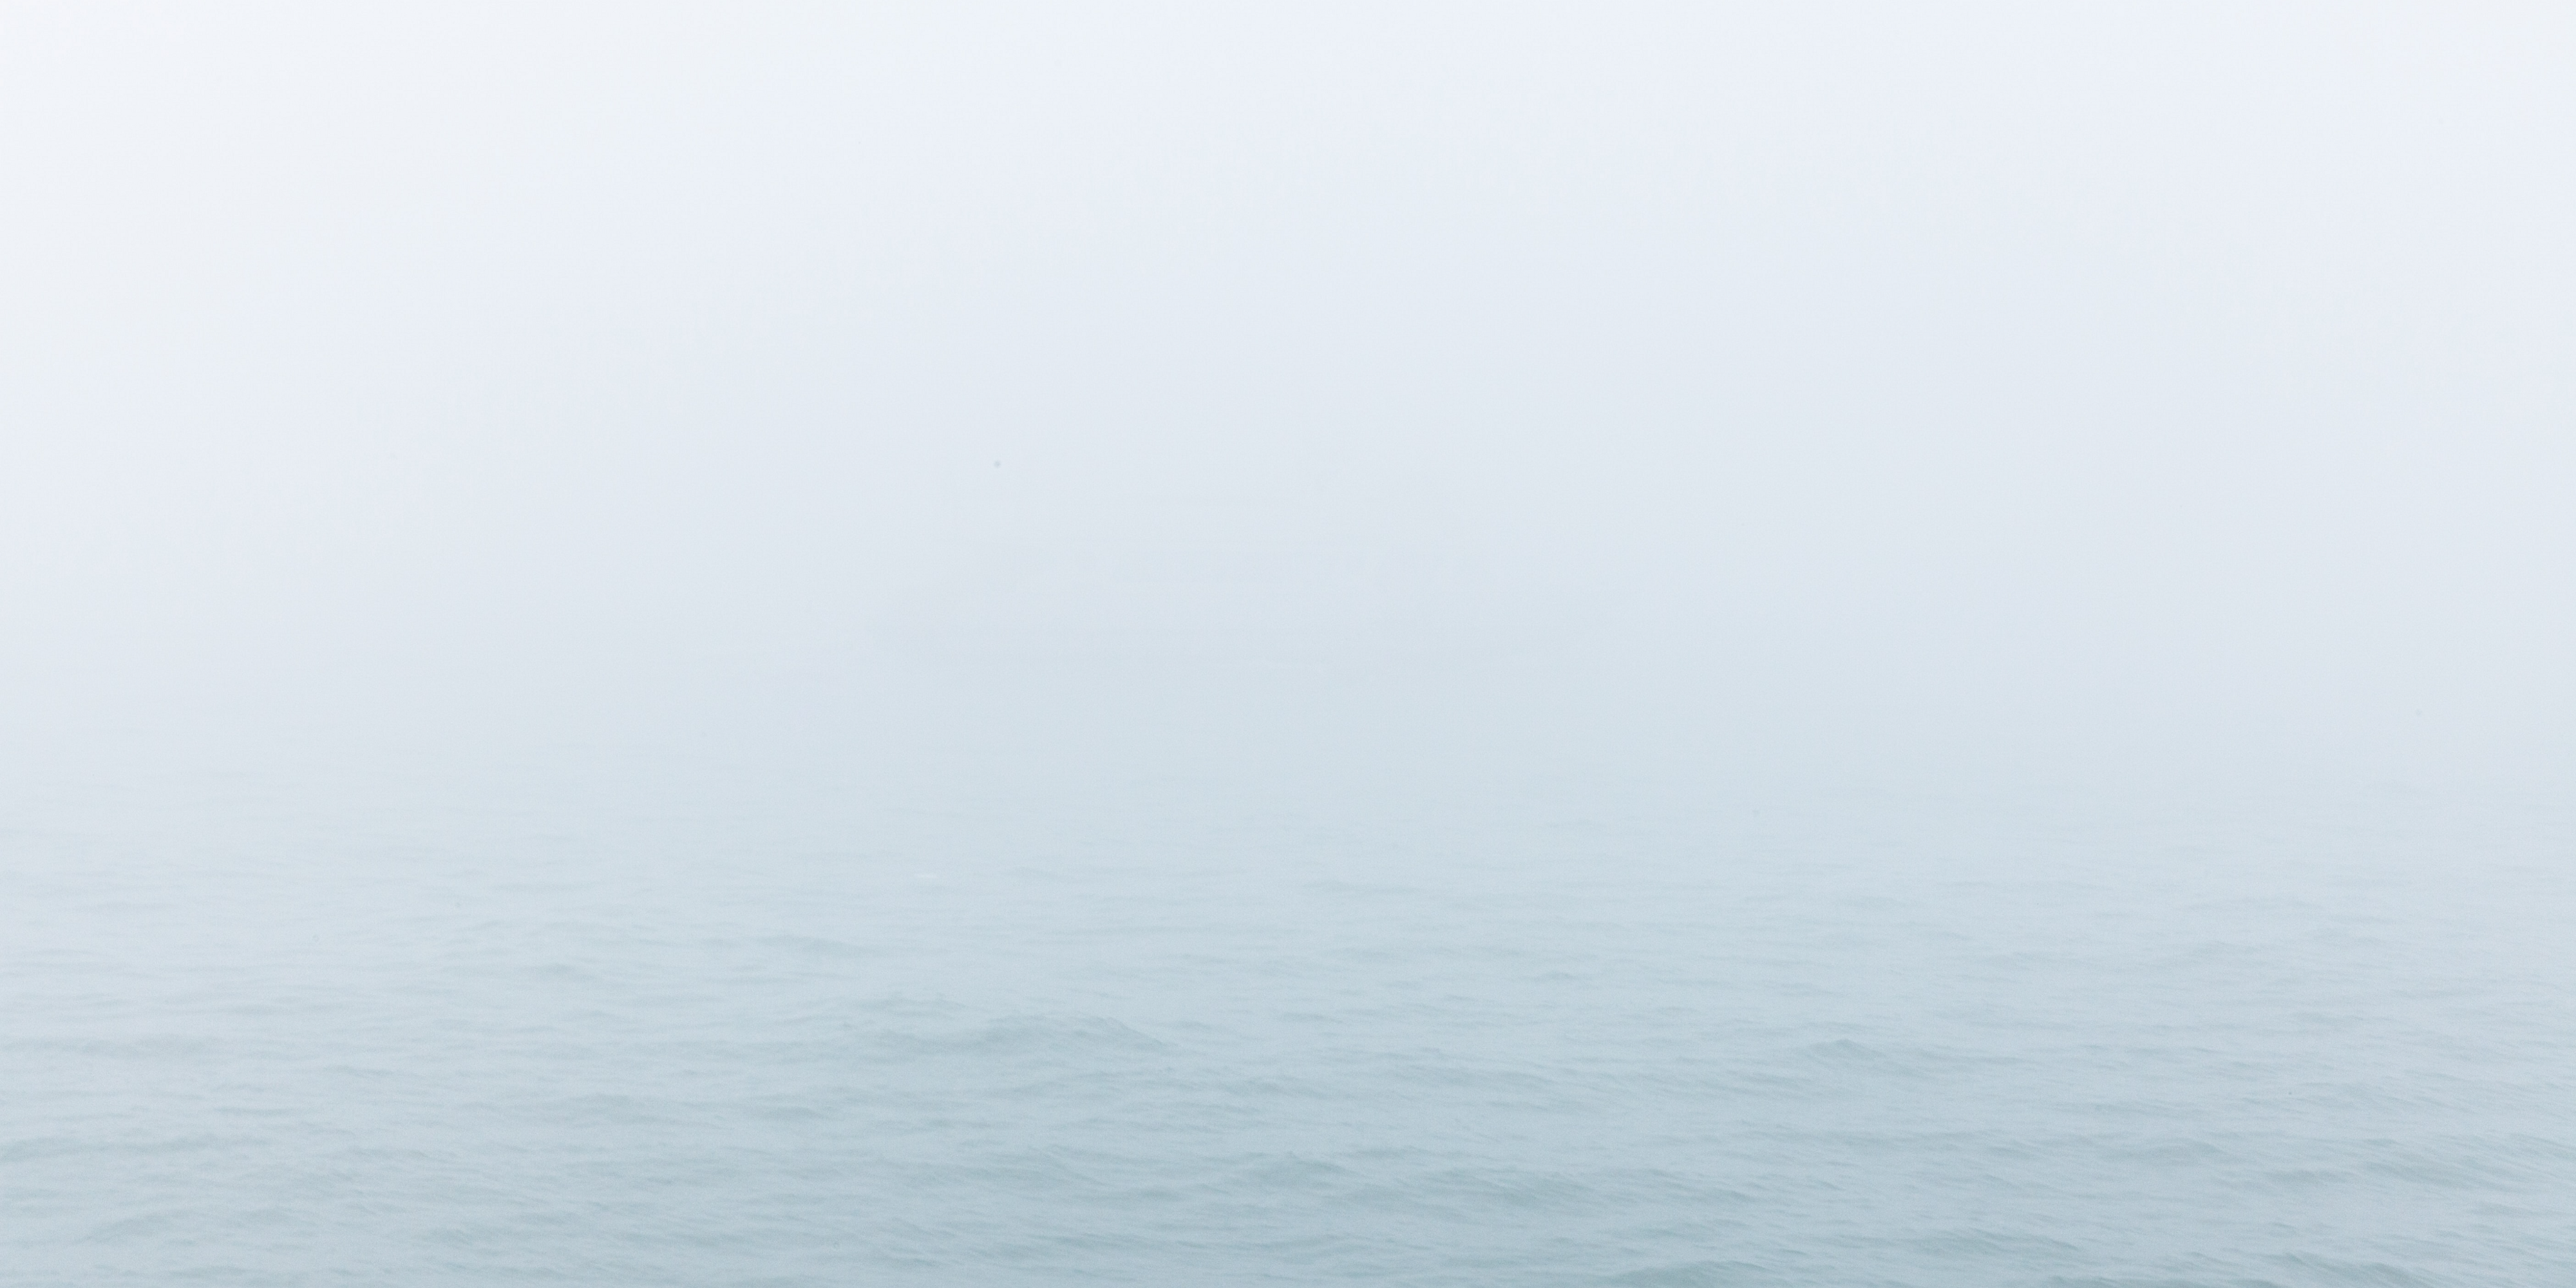 [Photo] Mist over the ocean.